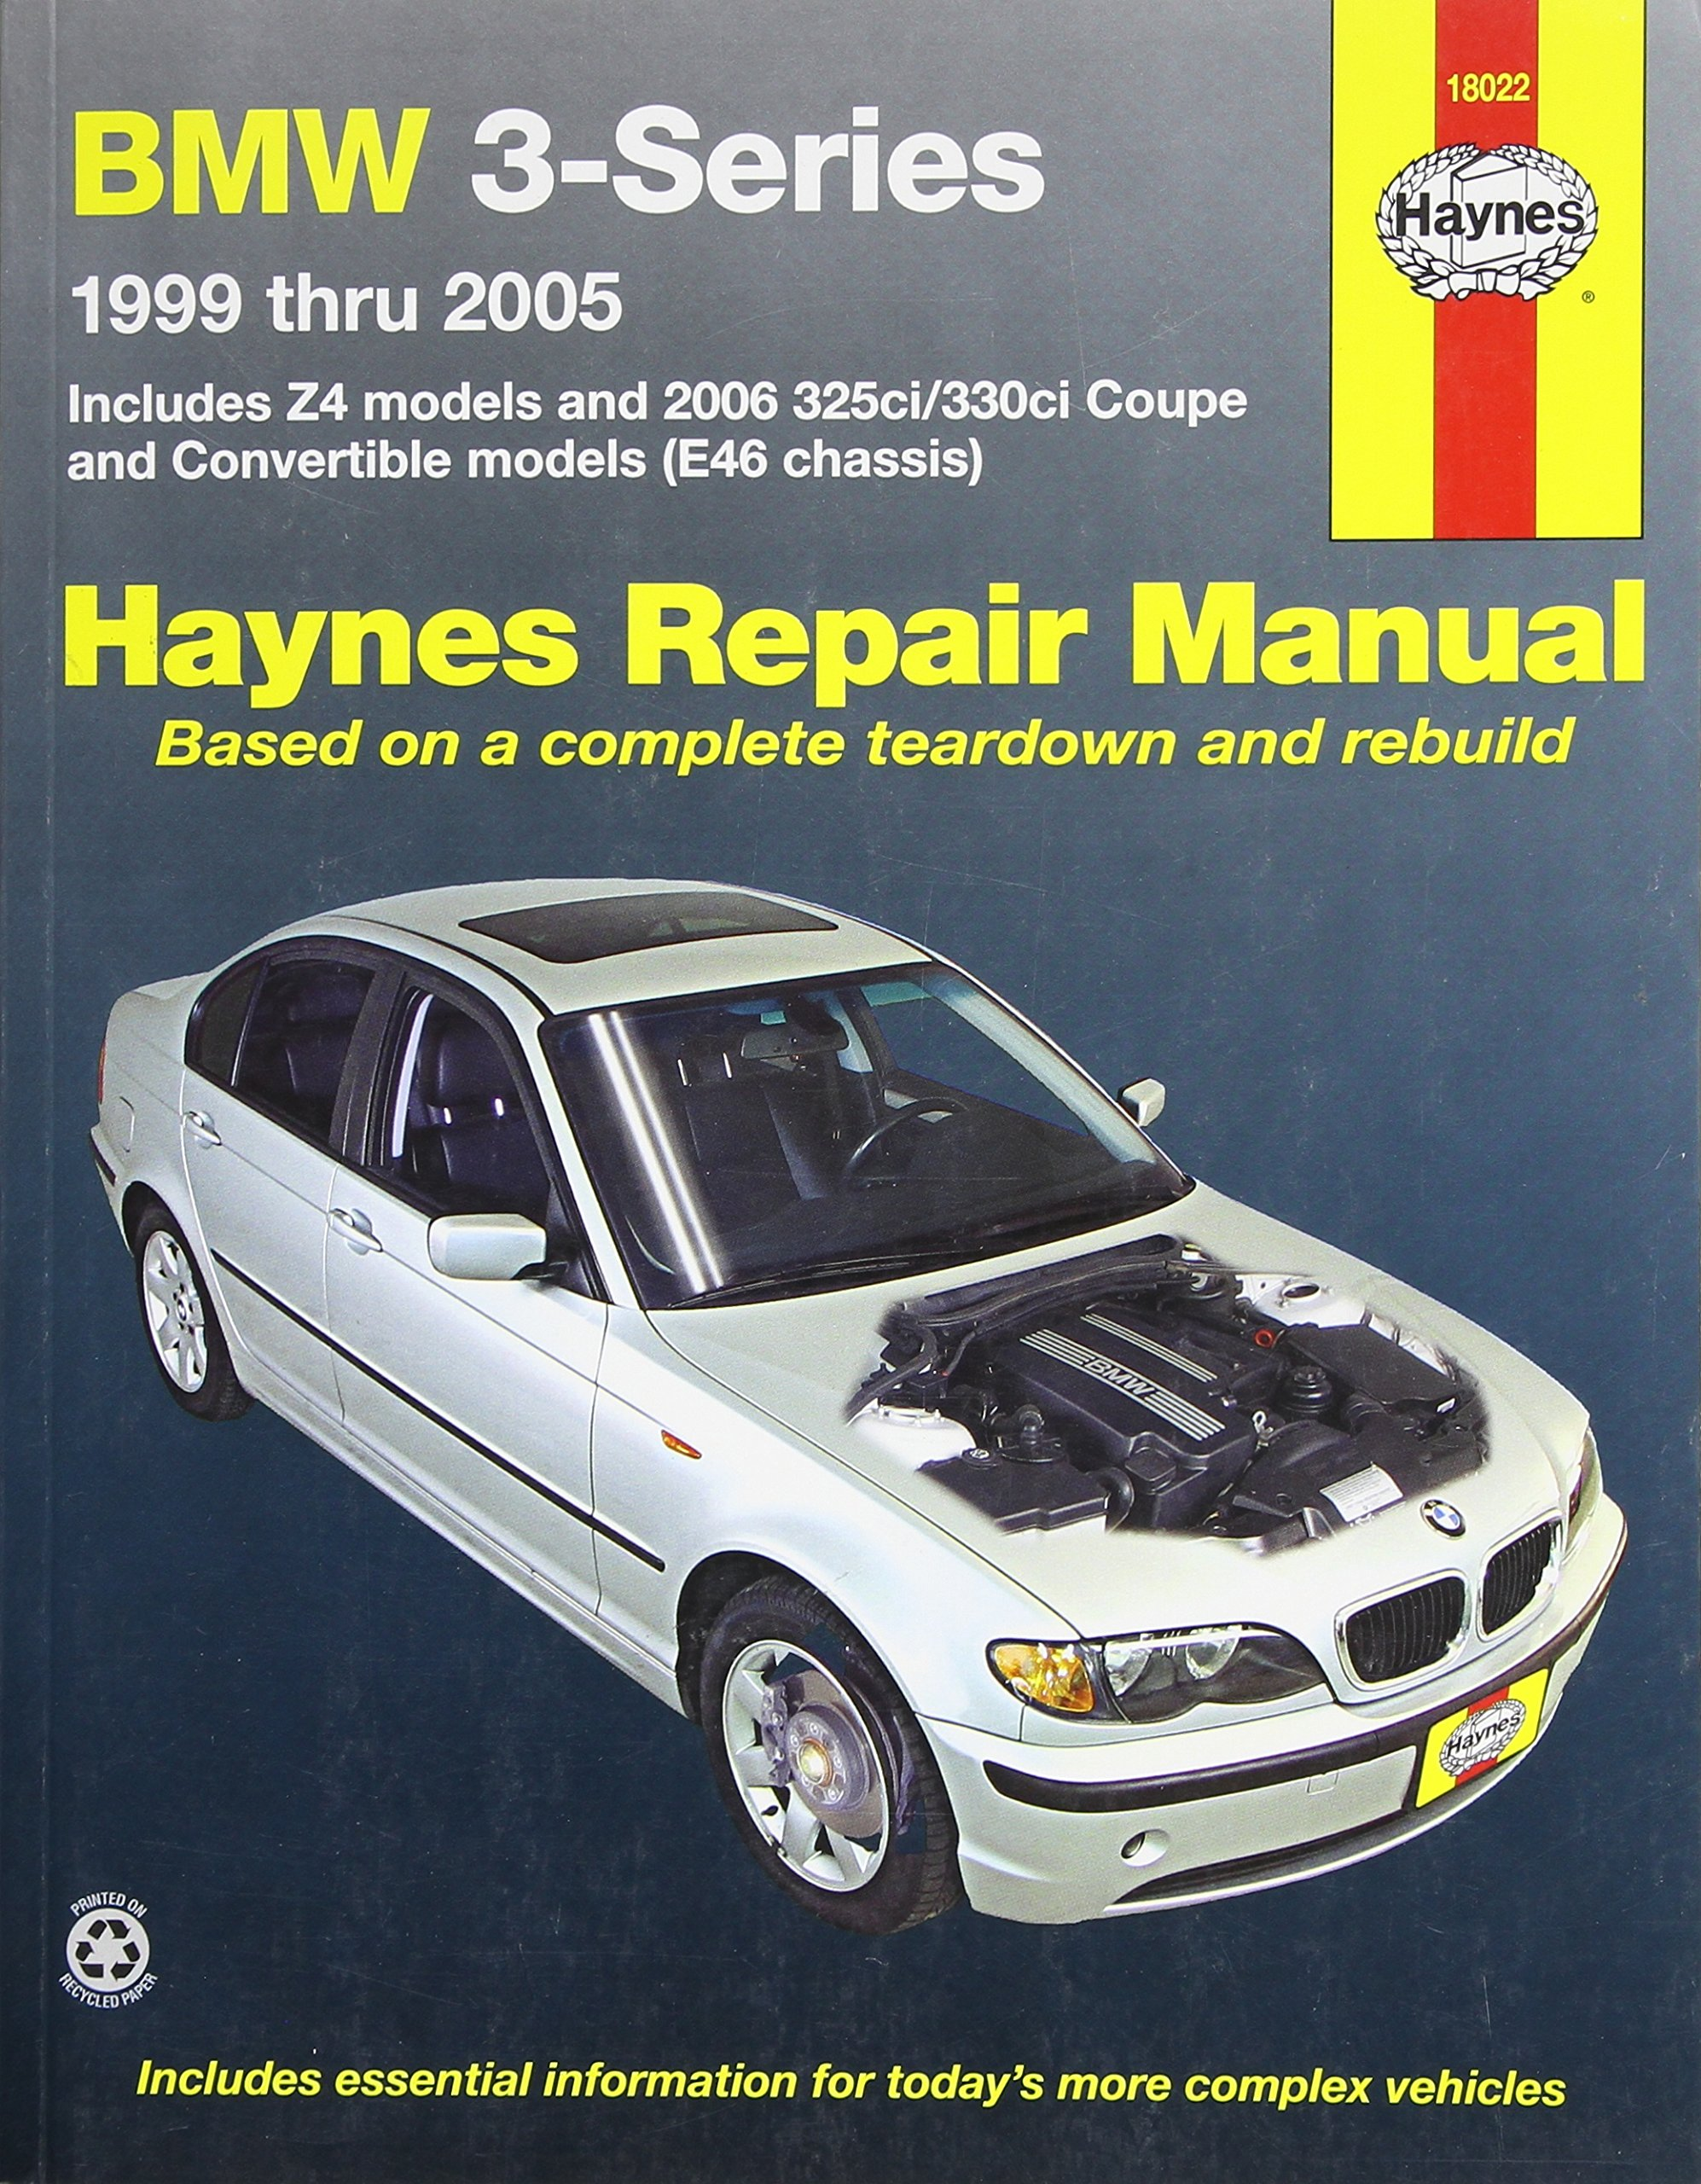 Haynes Publications, Inc. 18022 Repair Manual: 0038345180224: Amazon.com:  Books